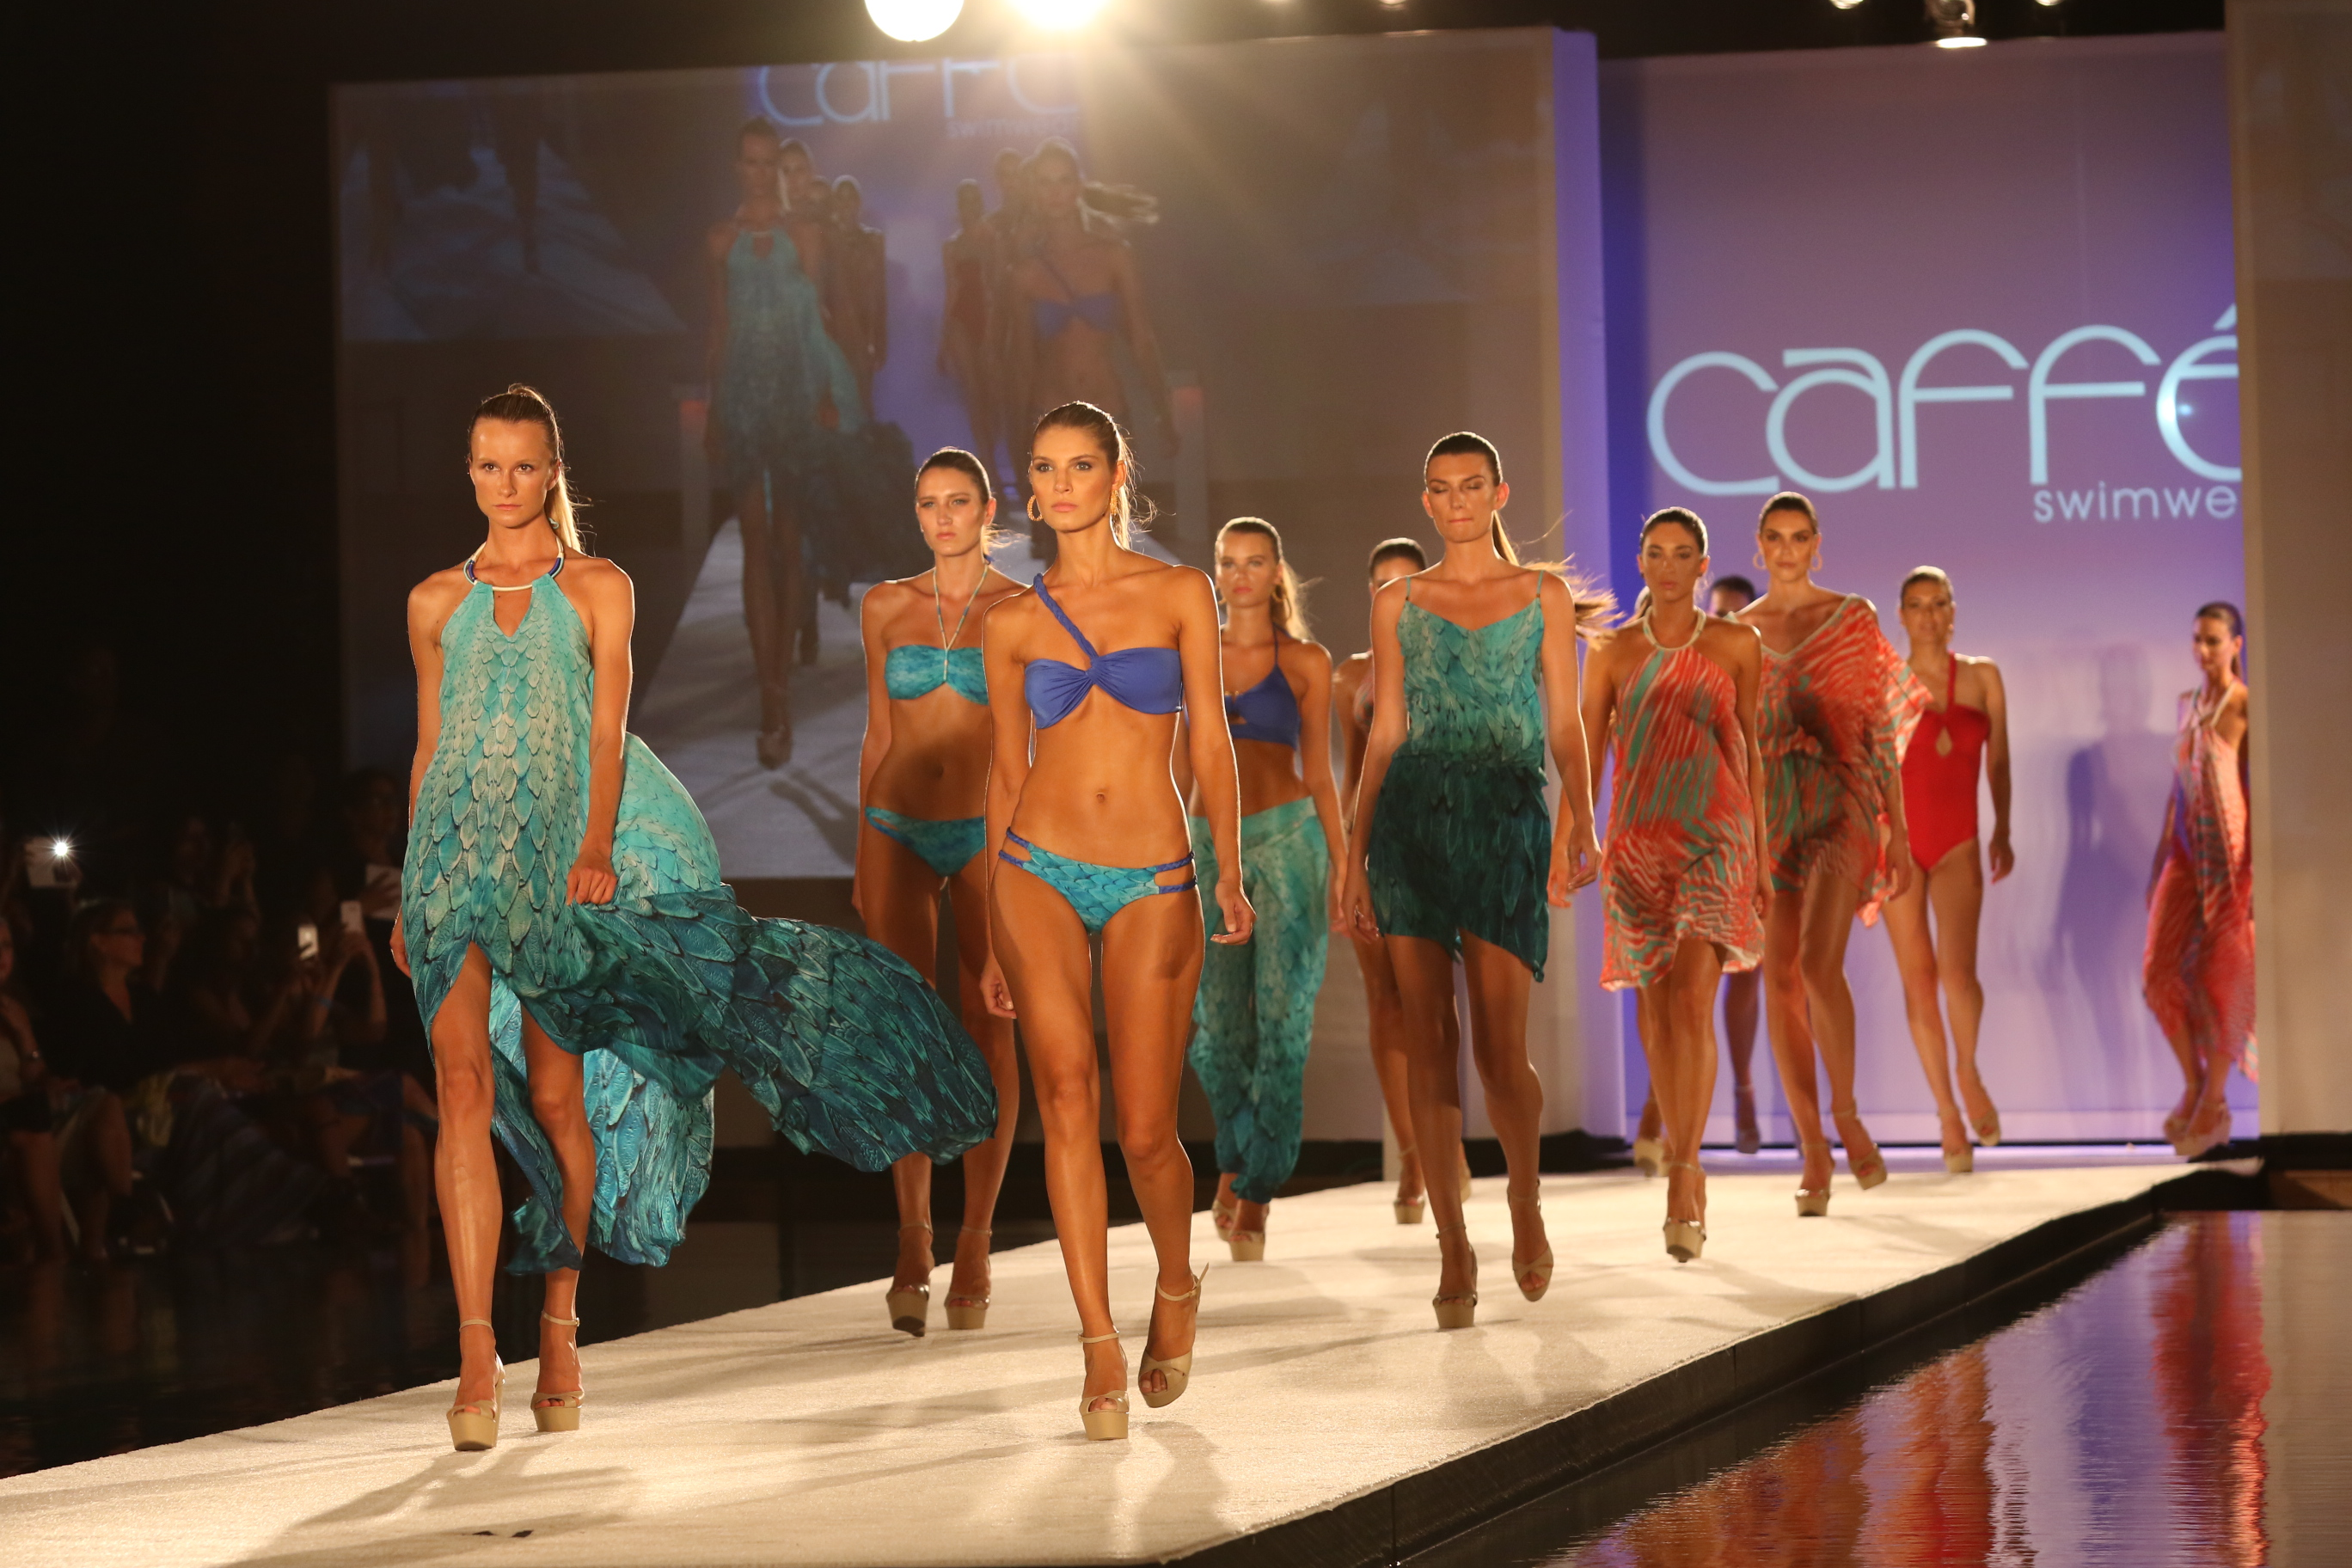 Caffe Swimwear at Miami Swim Week